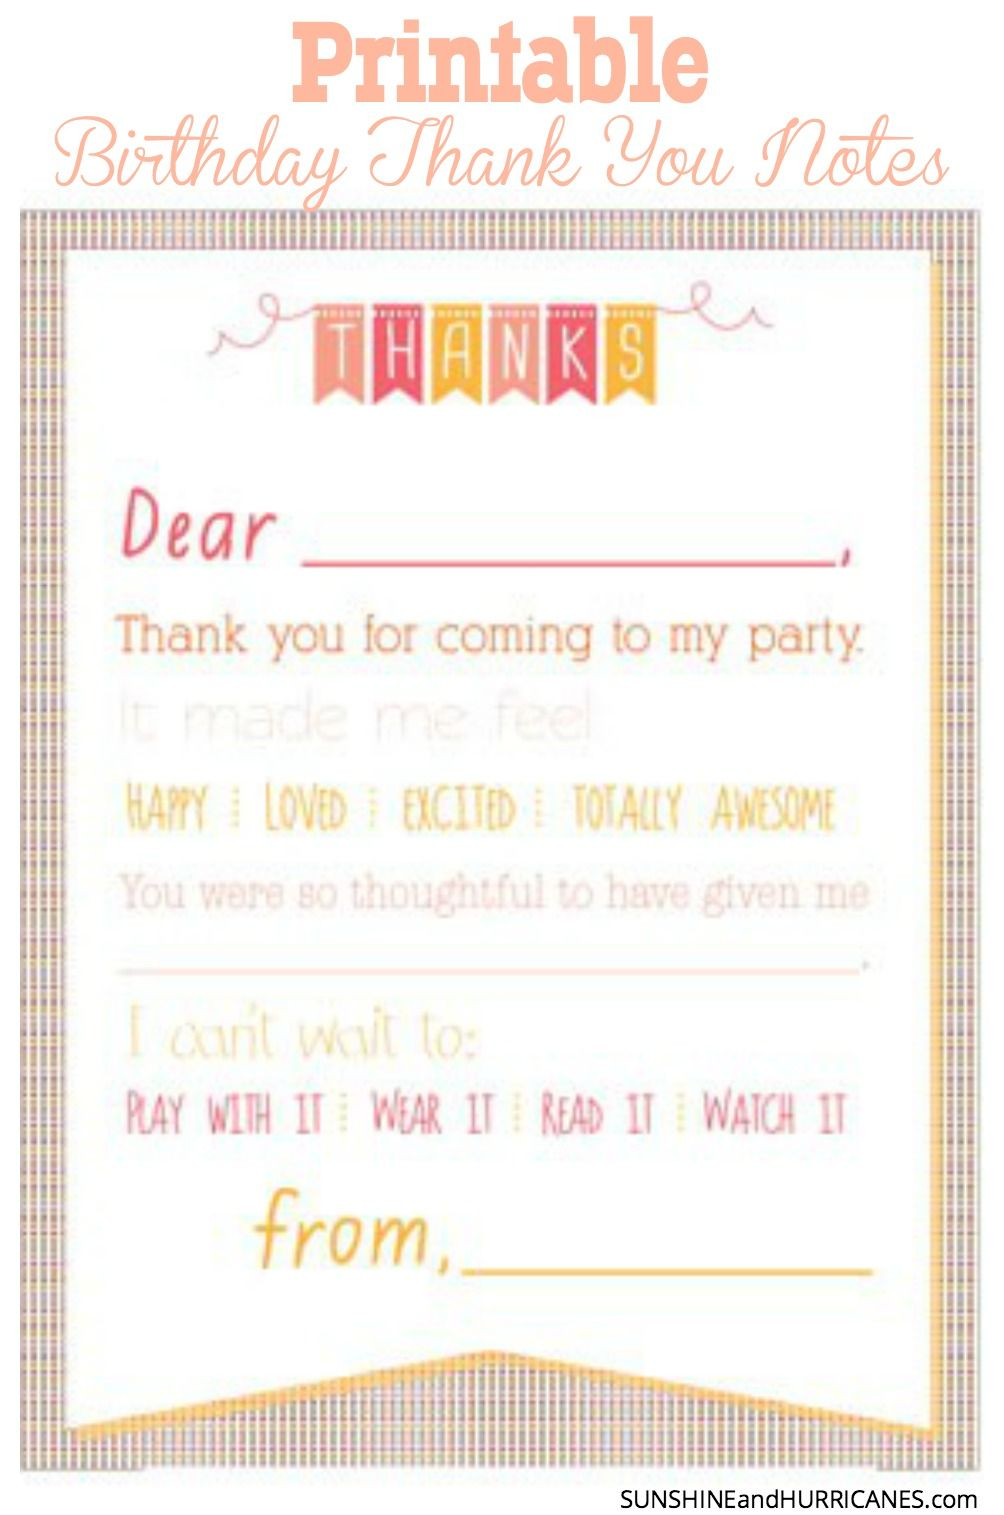 Birthday Ideas Looking For A Cute And Simple Way To Take Care Of Thank You Notes